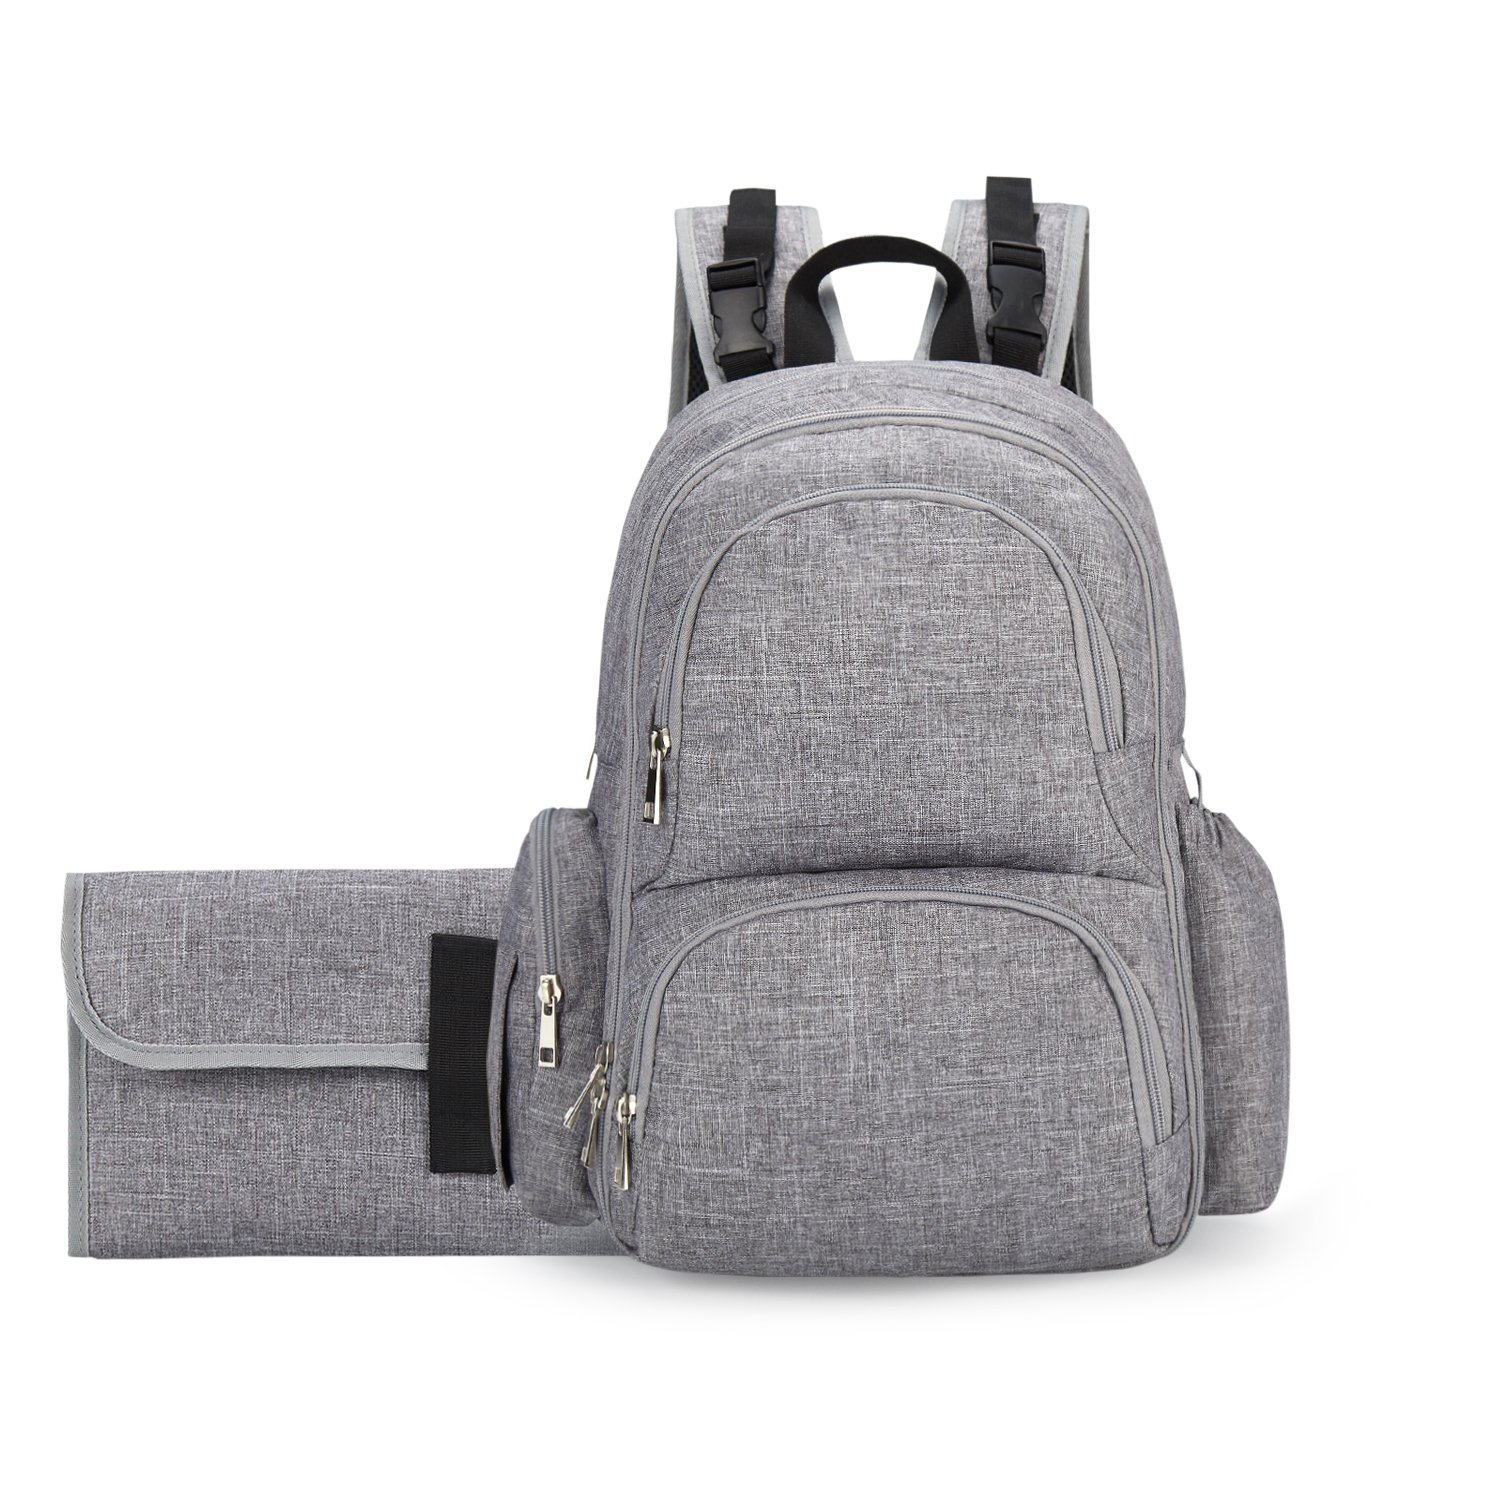 Backpack Diaper Bag for Mom - and Dad | Stroller Straps, Changing Pad, Wipe Dispenser, Insulated Pockets | Baby Bags for Girls and Boys | Baby Shower 2018 (Gray)